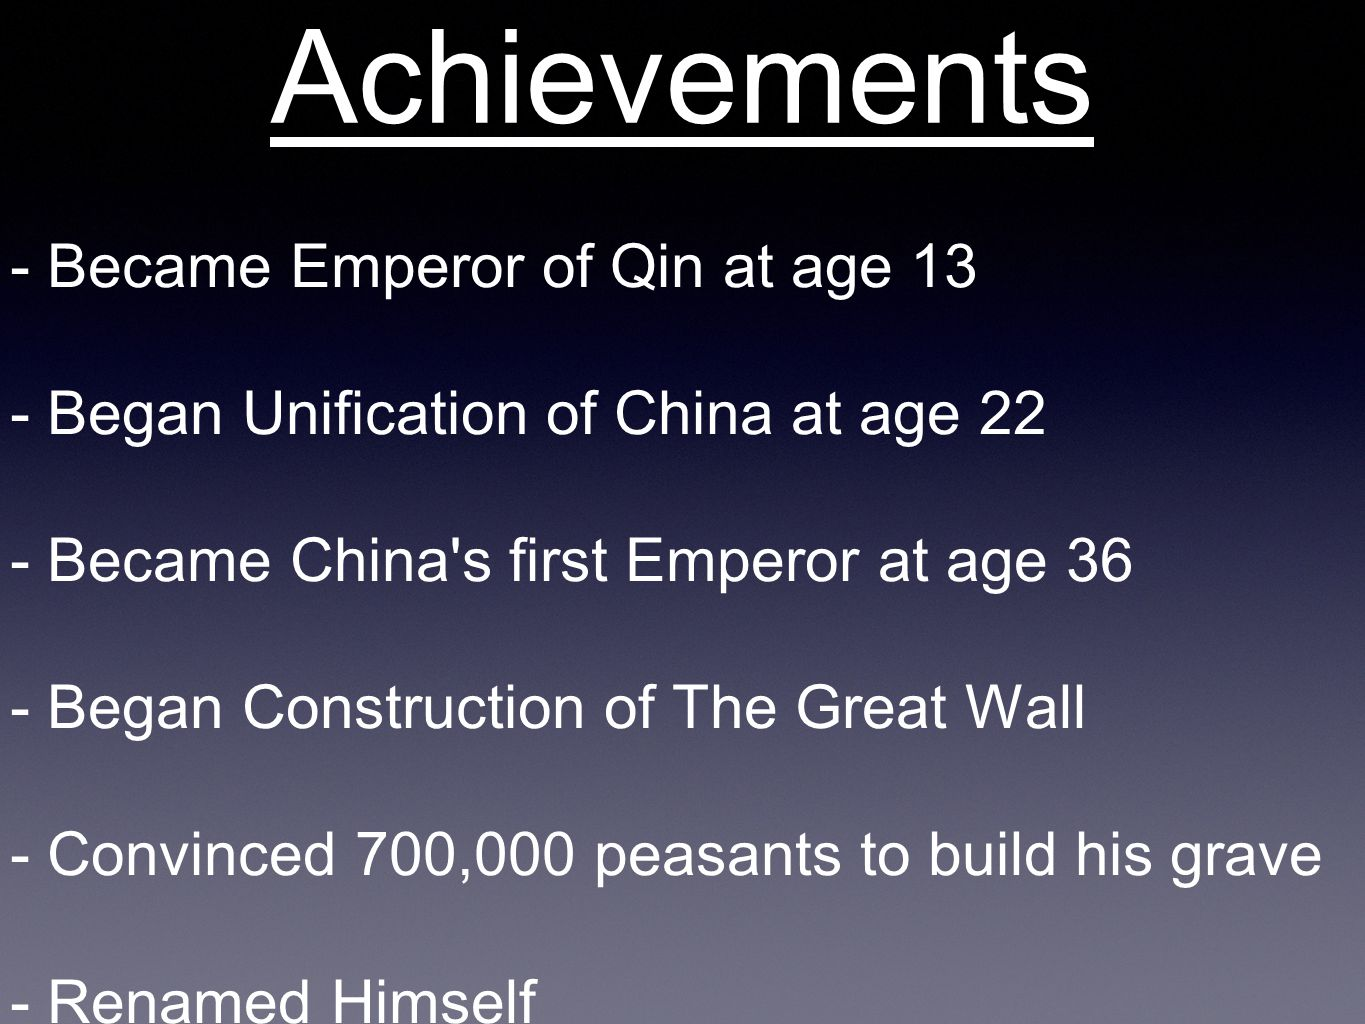 Achievements - Became Emperor of Qin at age 13 - Began Unification of China at age 22 - Became China's first Emperor at age 36 - Began Construction of